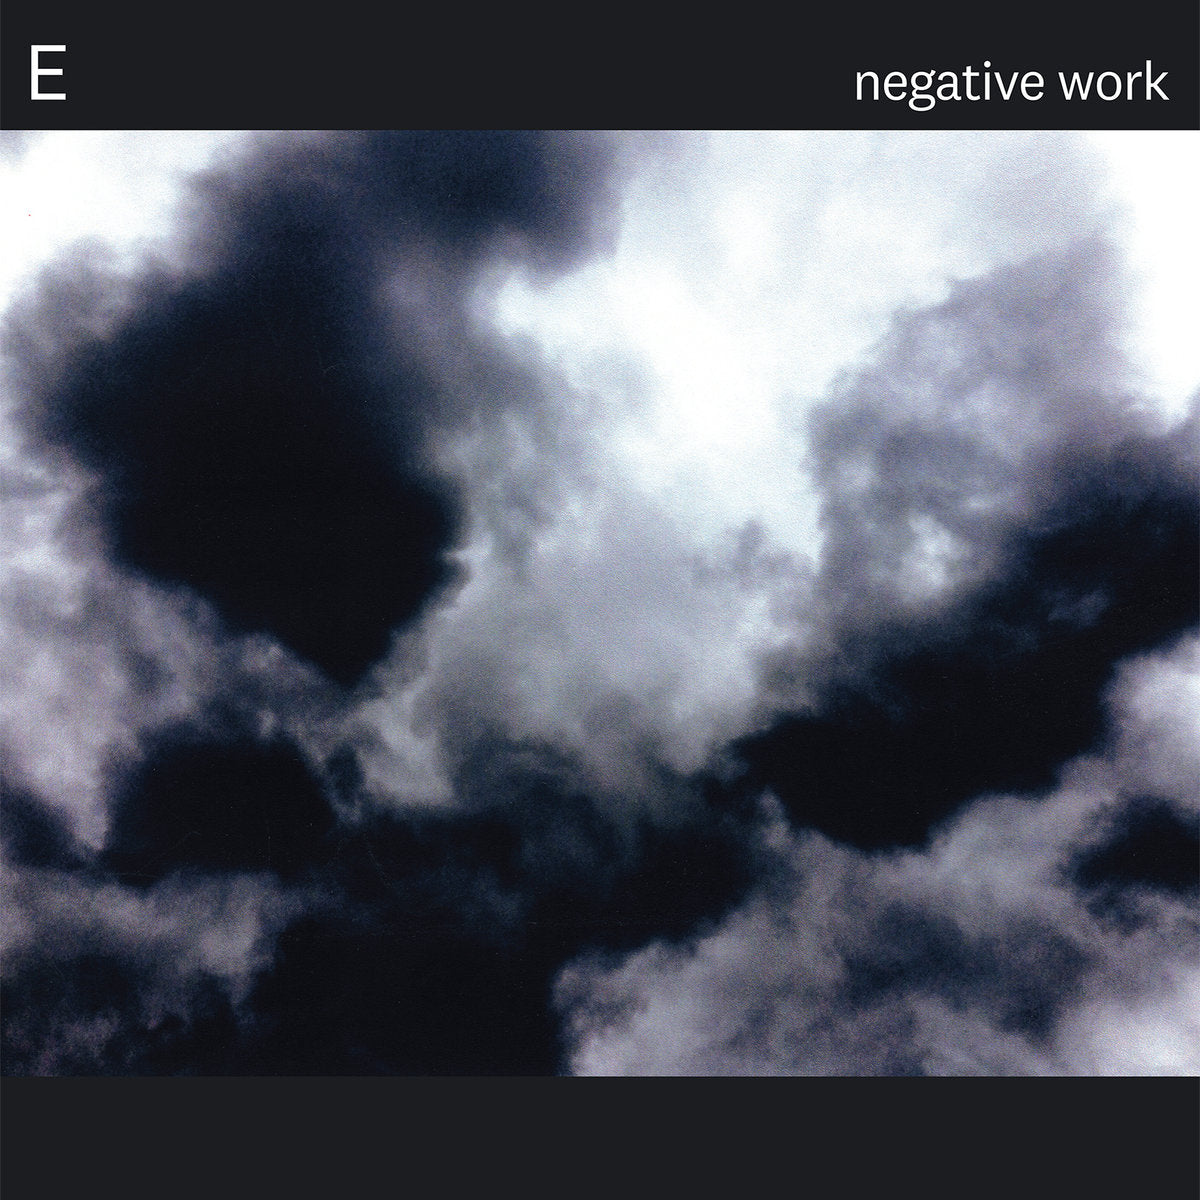 E - Negative Work LP